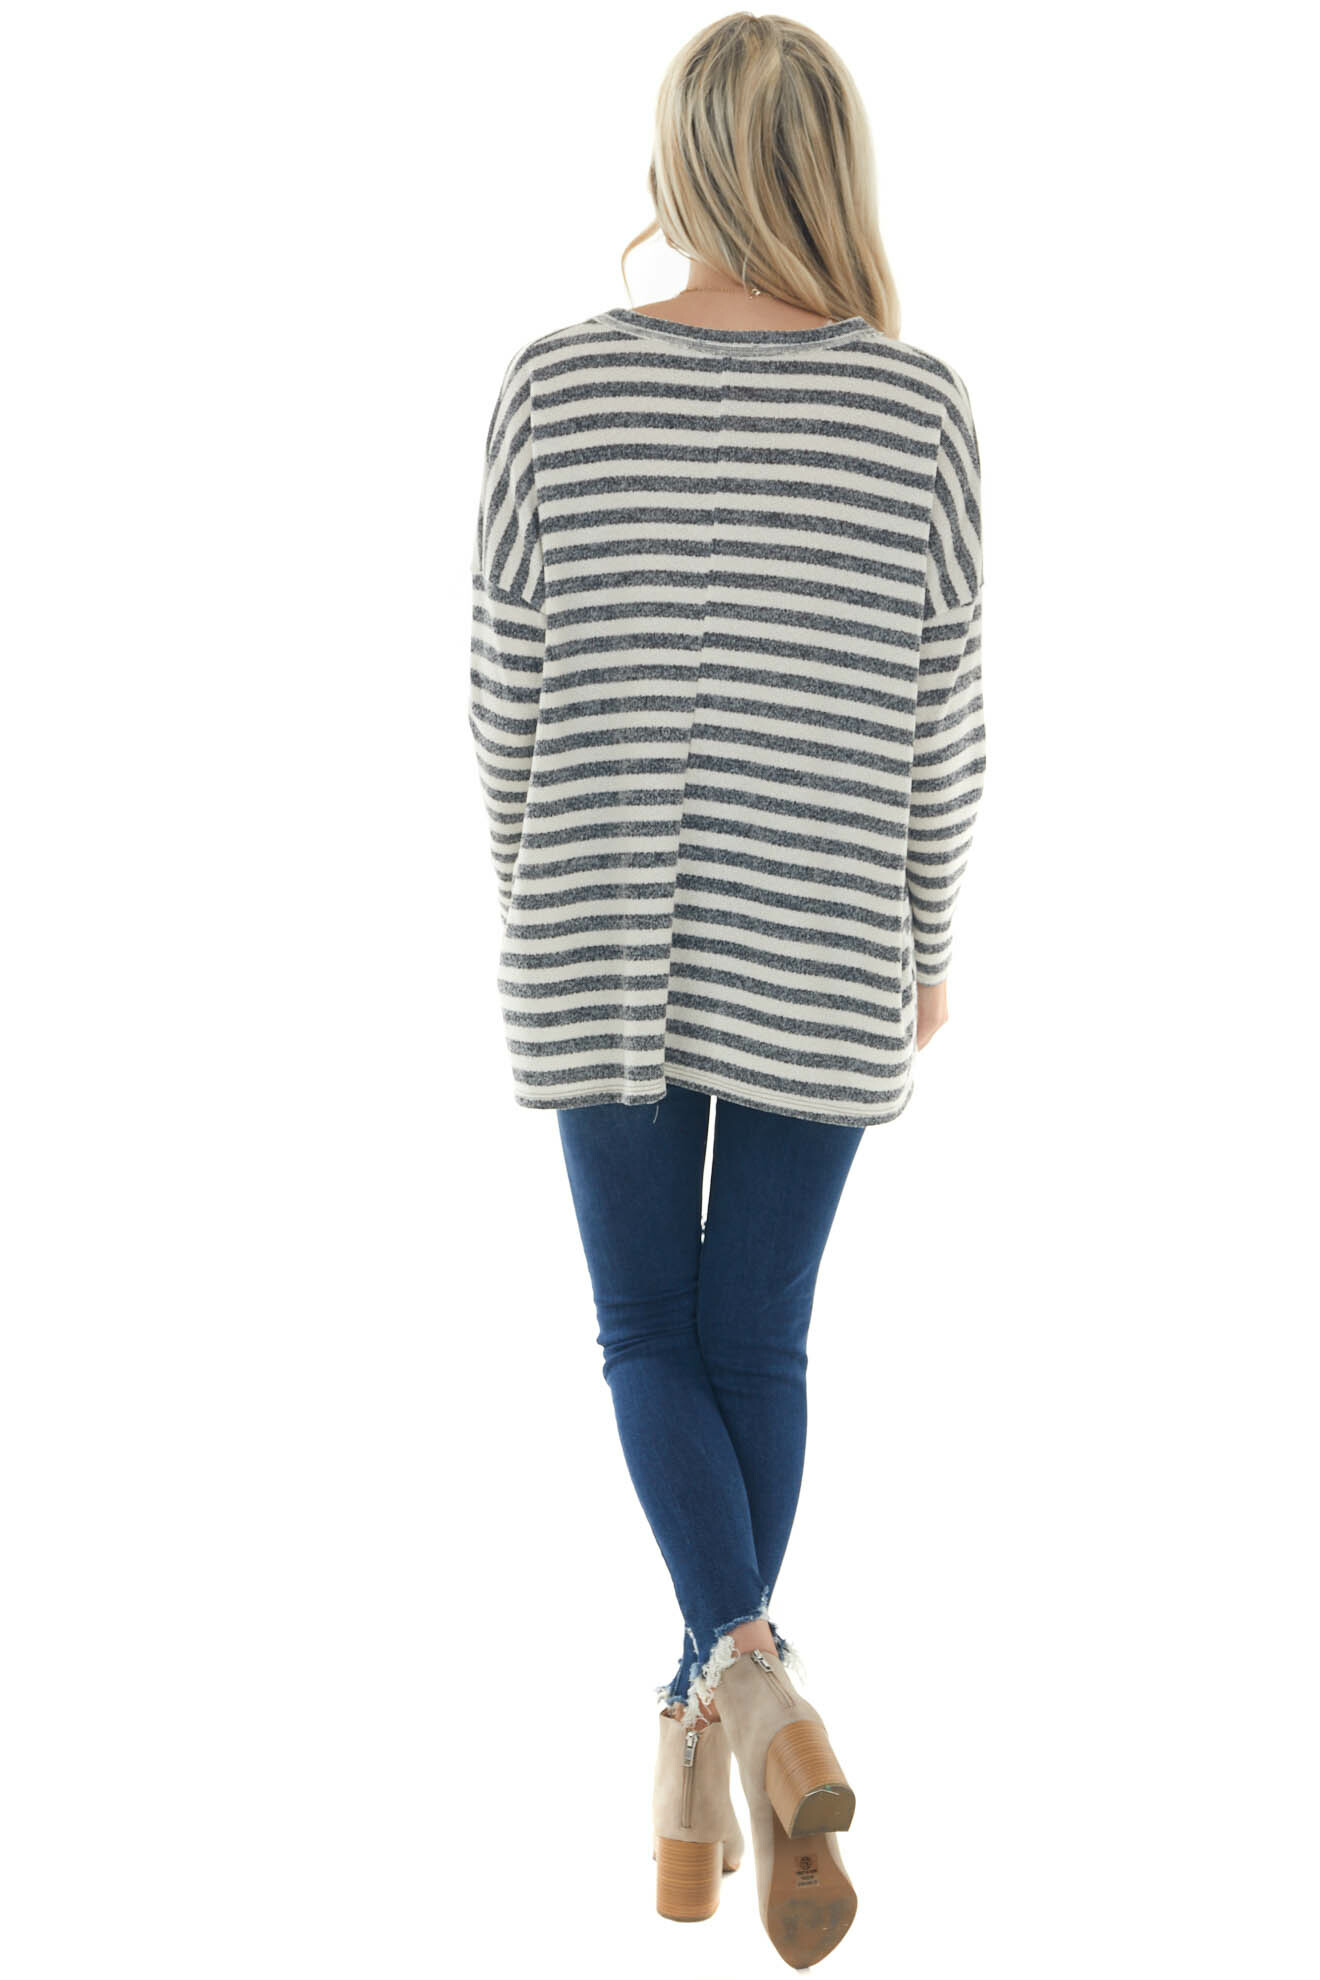 Ivory and Charcoal Striped Oversized Knit Top